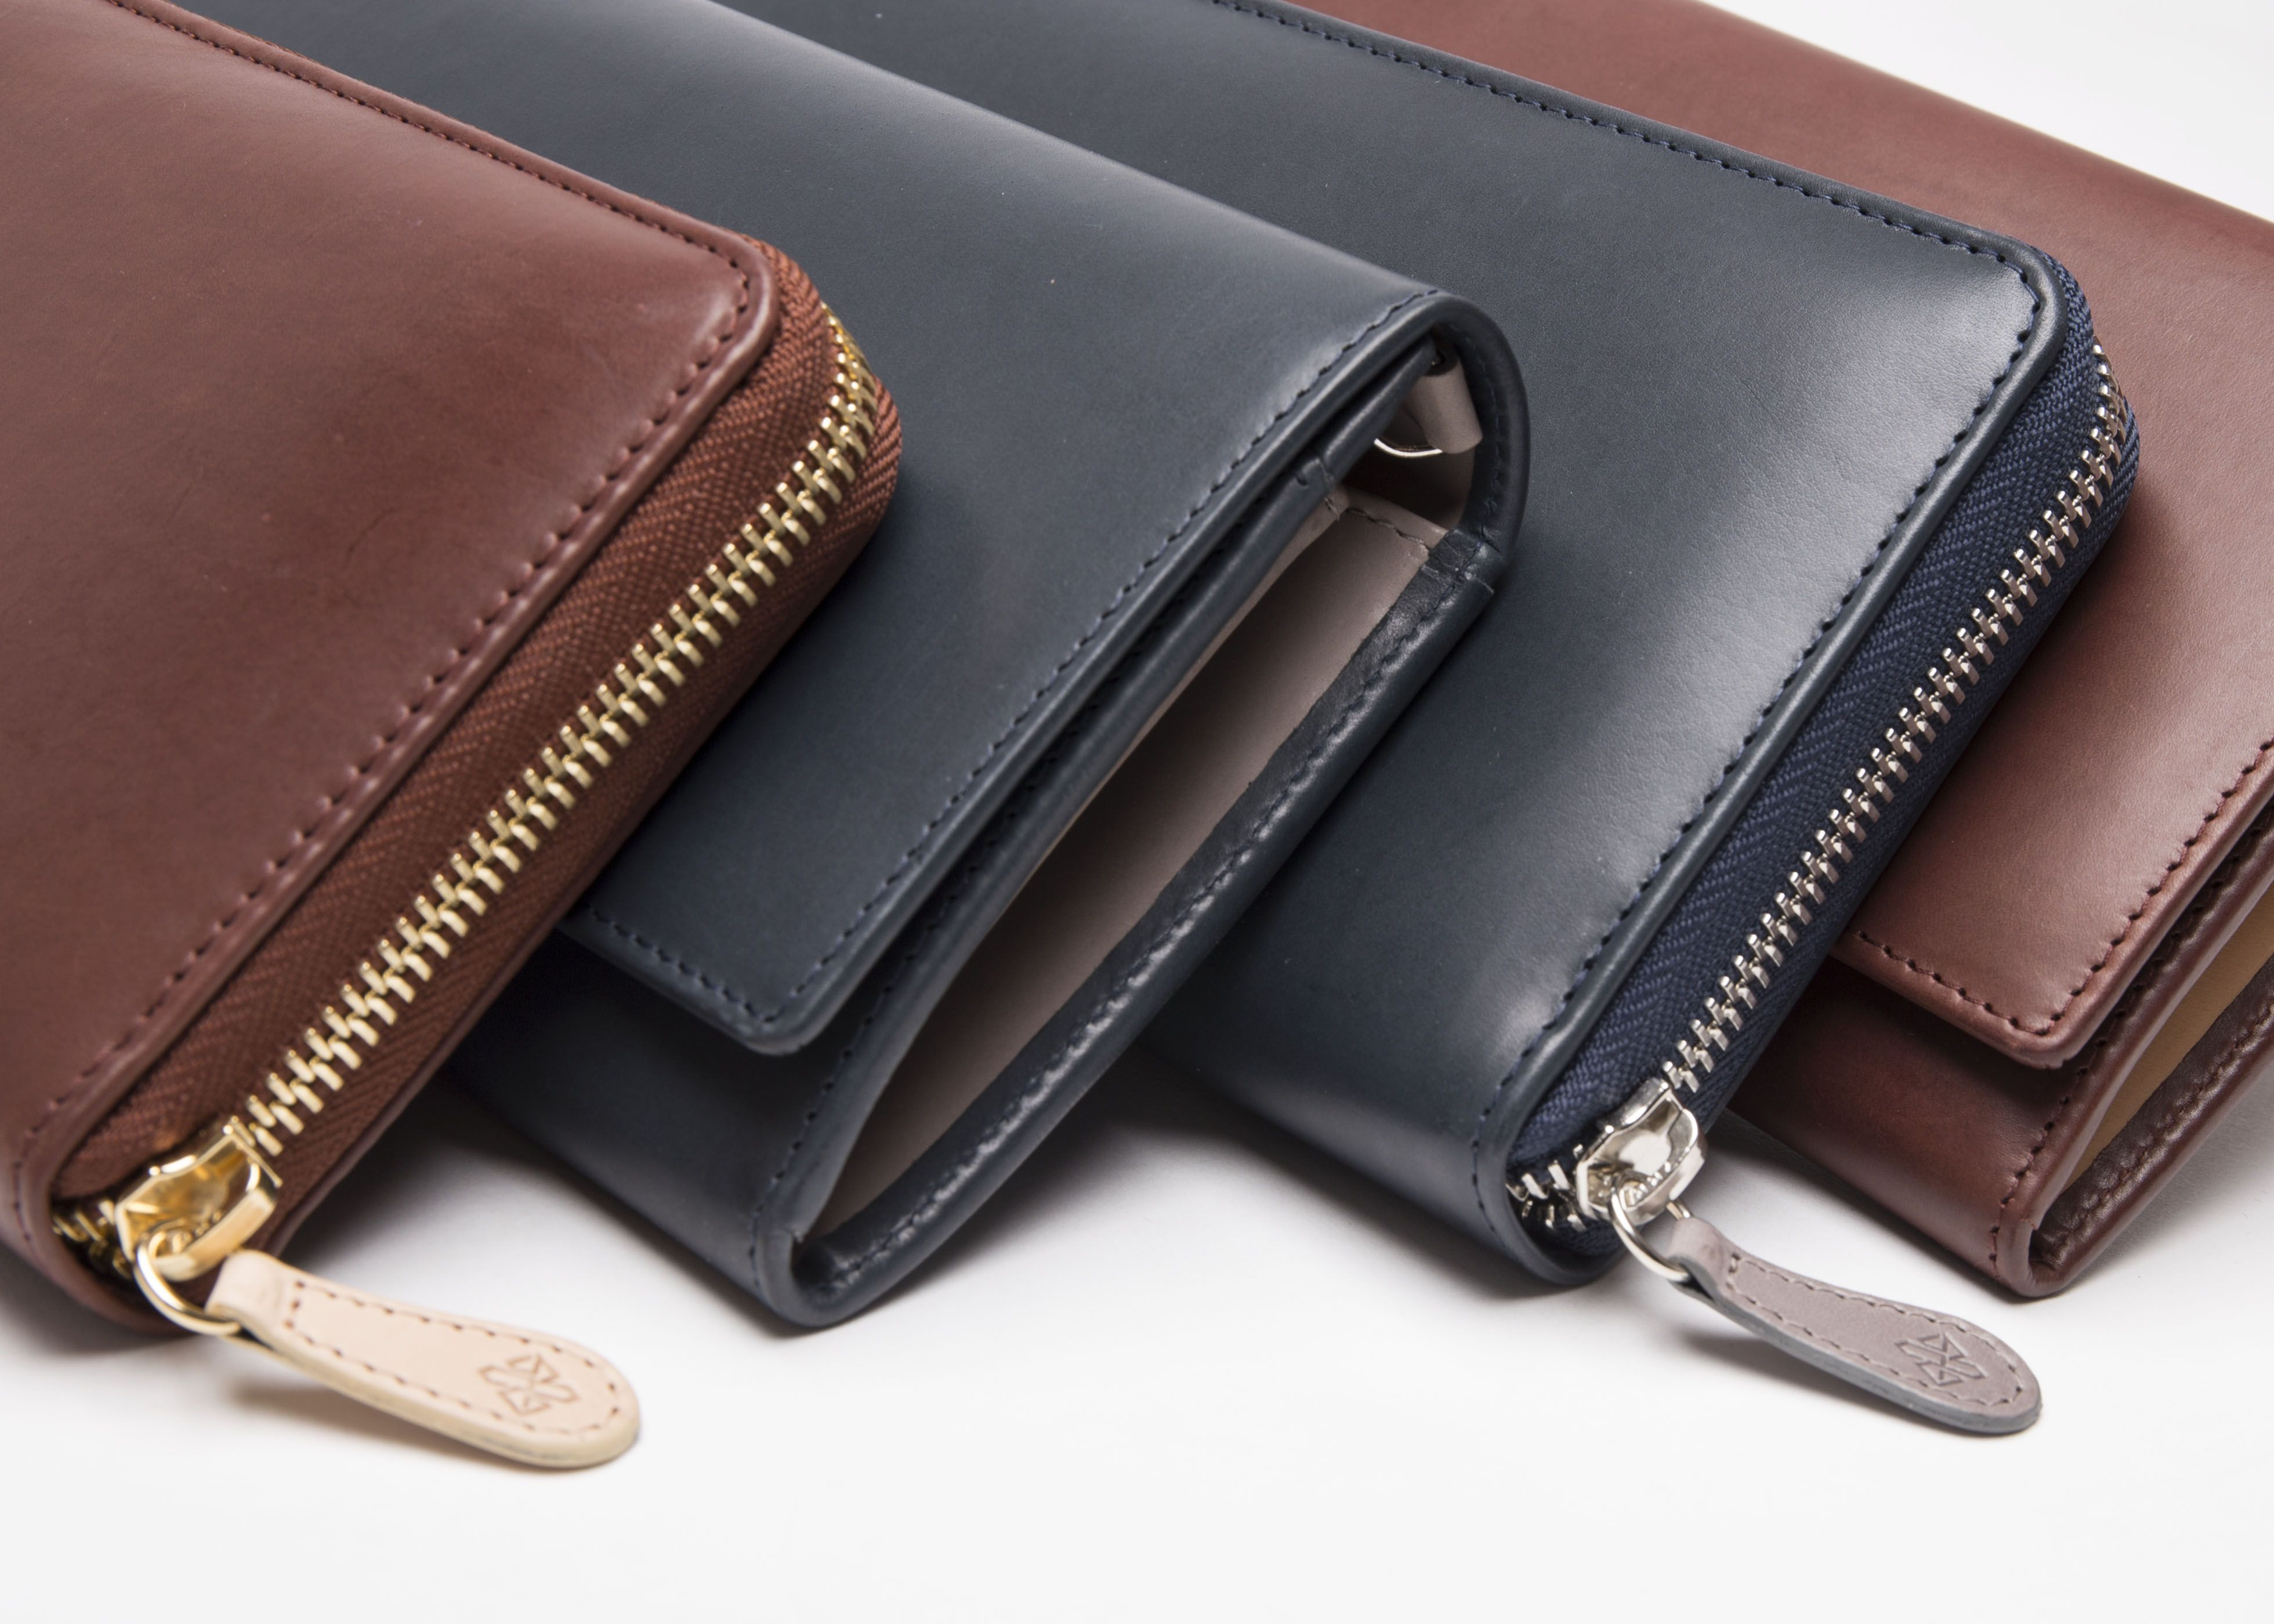 161008d67 Ettinger London - Luxury Leather Goods - Saint Crispin Collection -  Burnishable calf, silky soft leather. Purses in deep sea blue and bracken  brown.